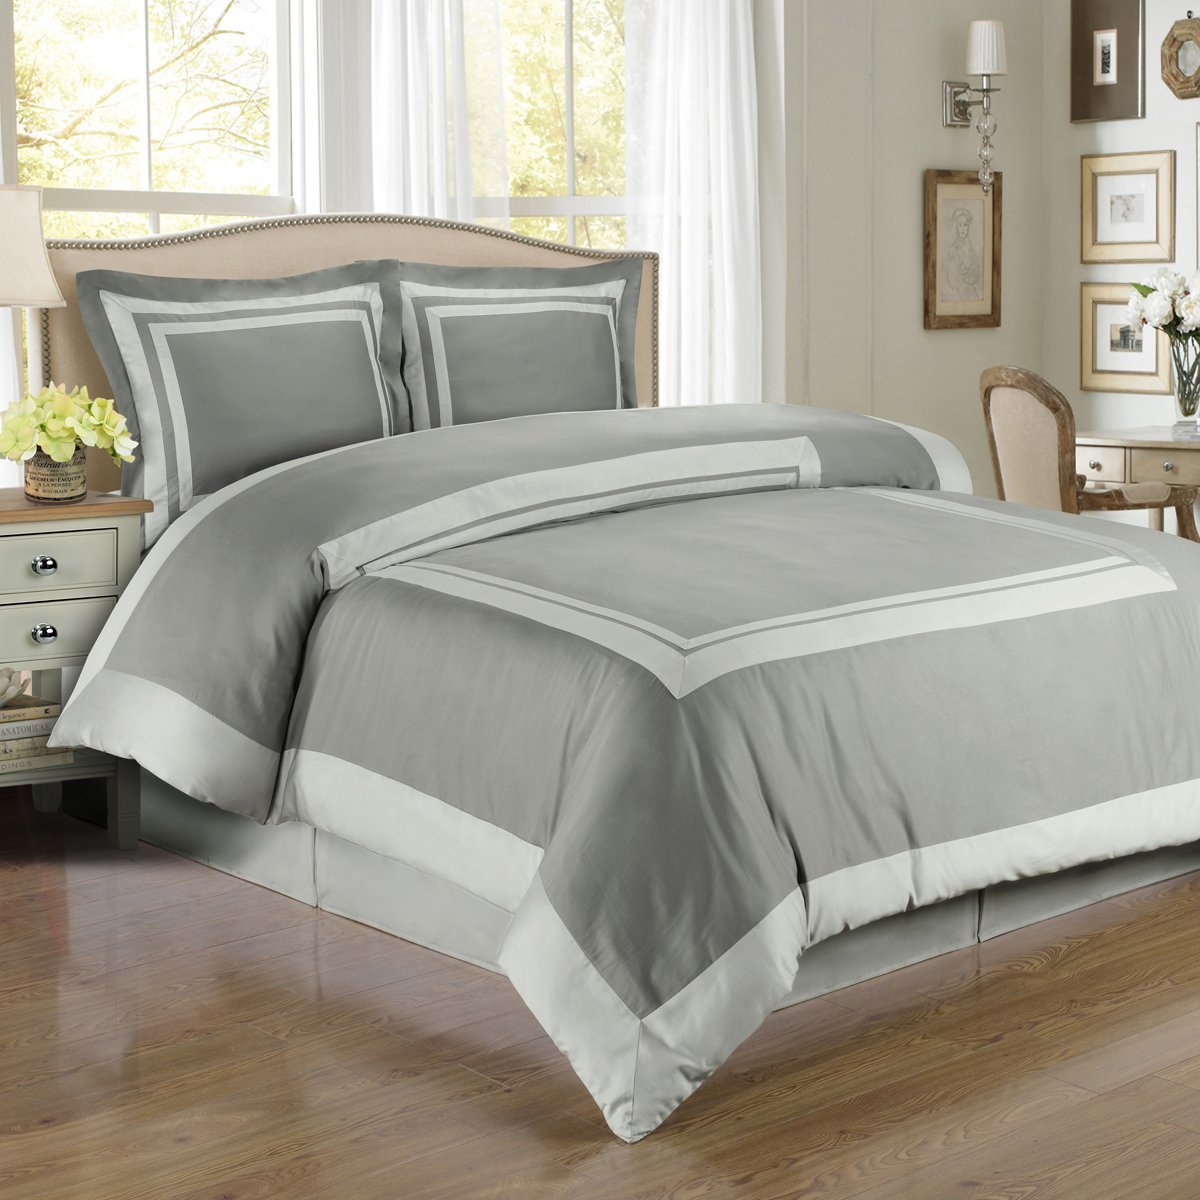 Is Egyptian Cotton Bedding For You?